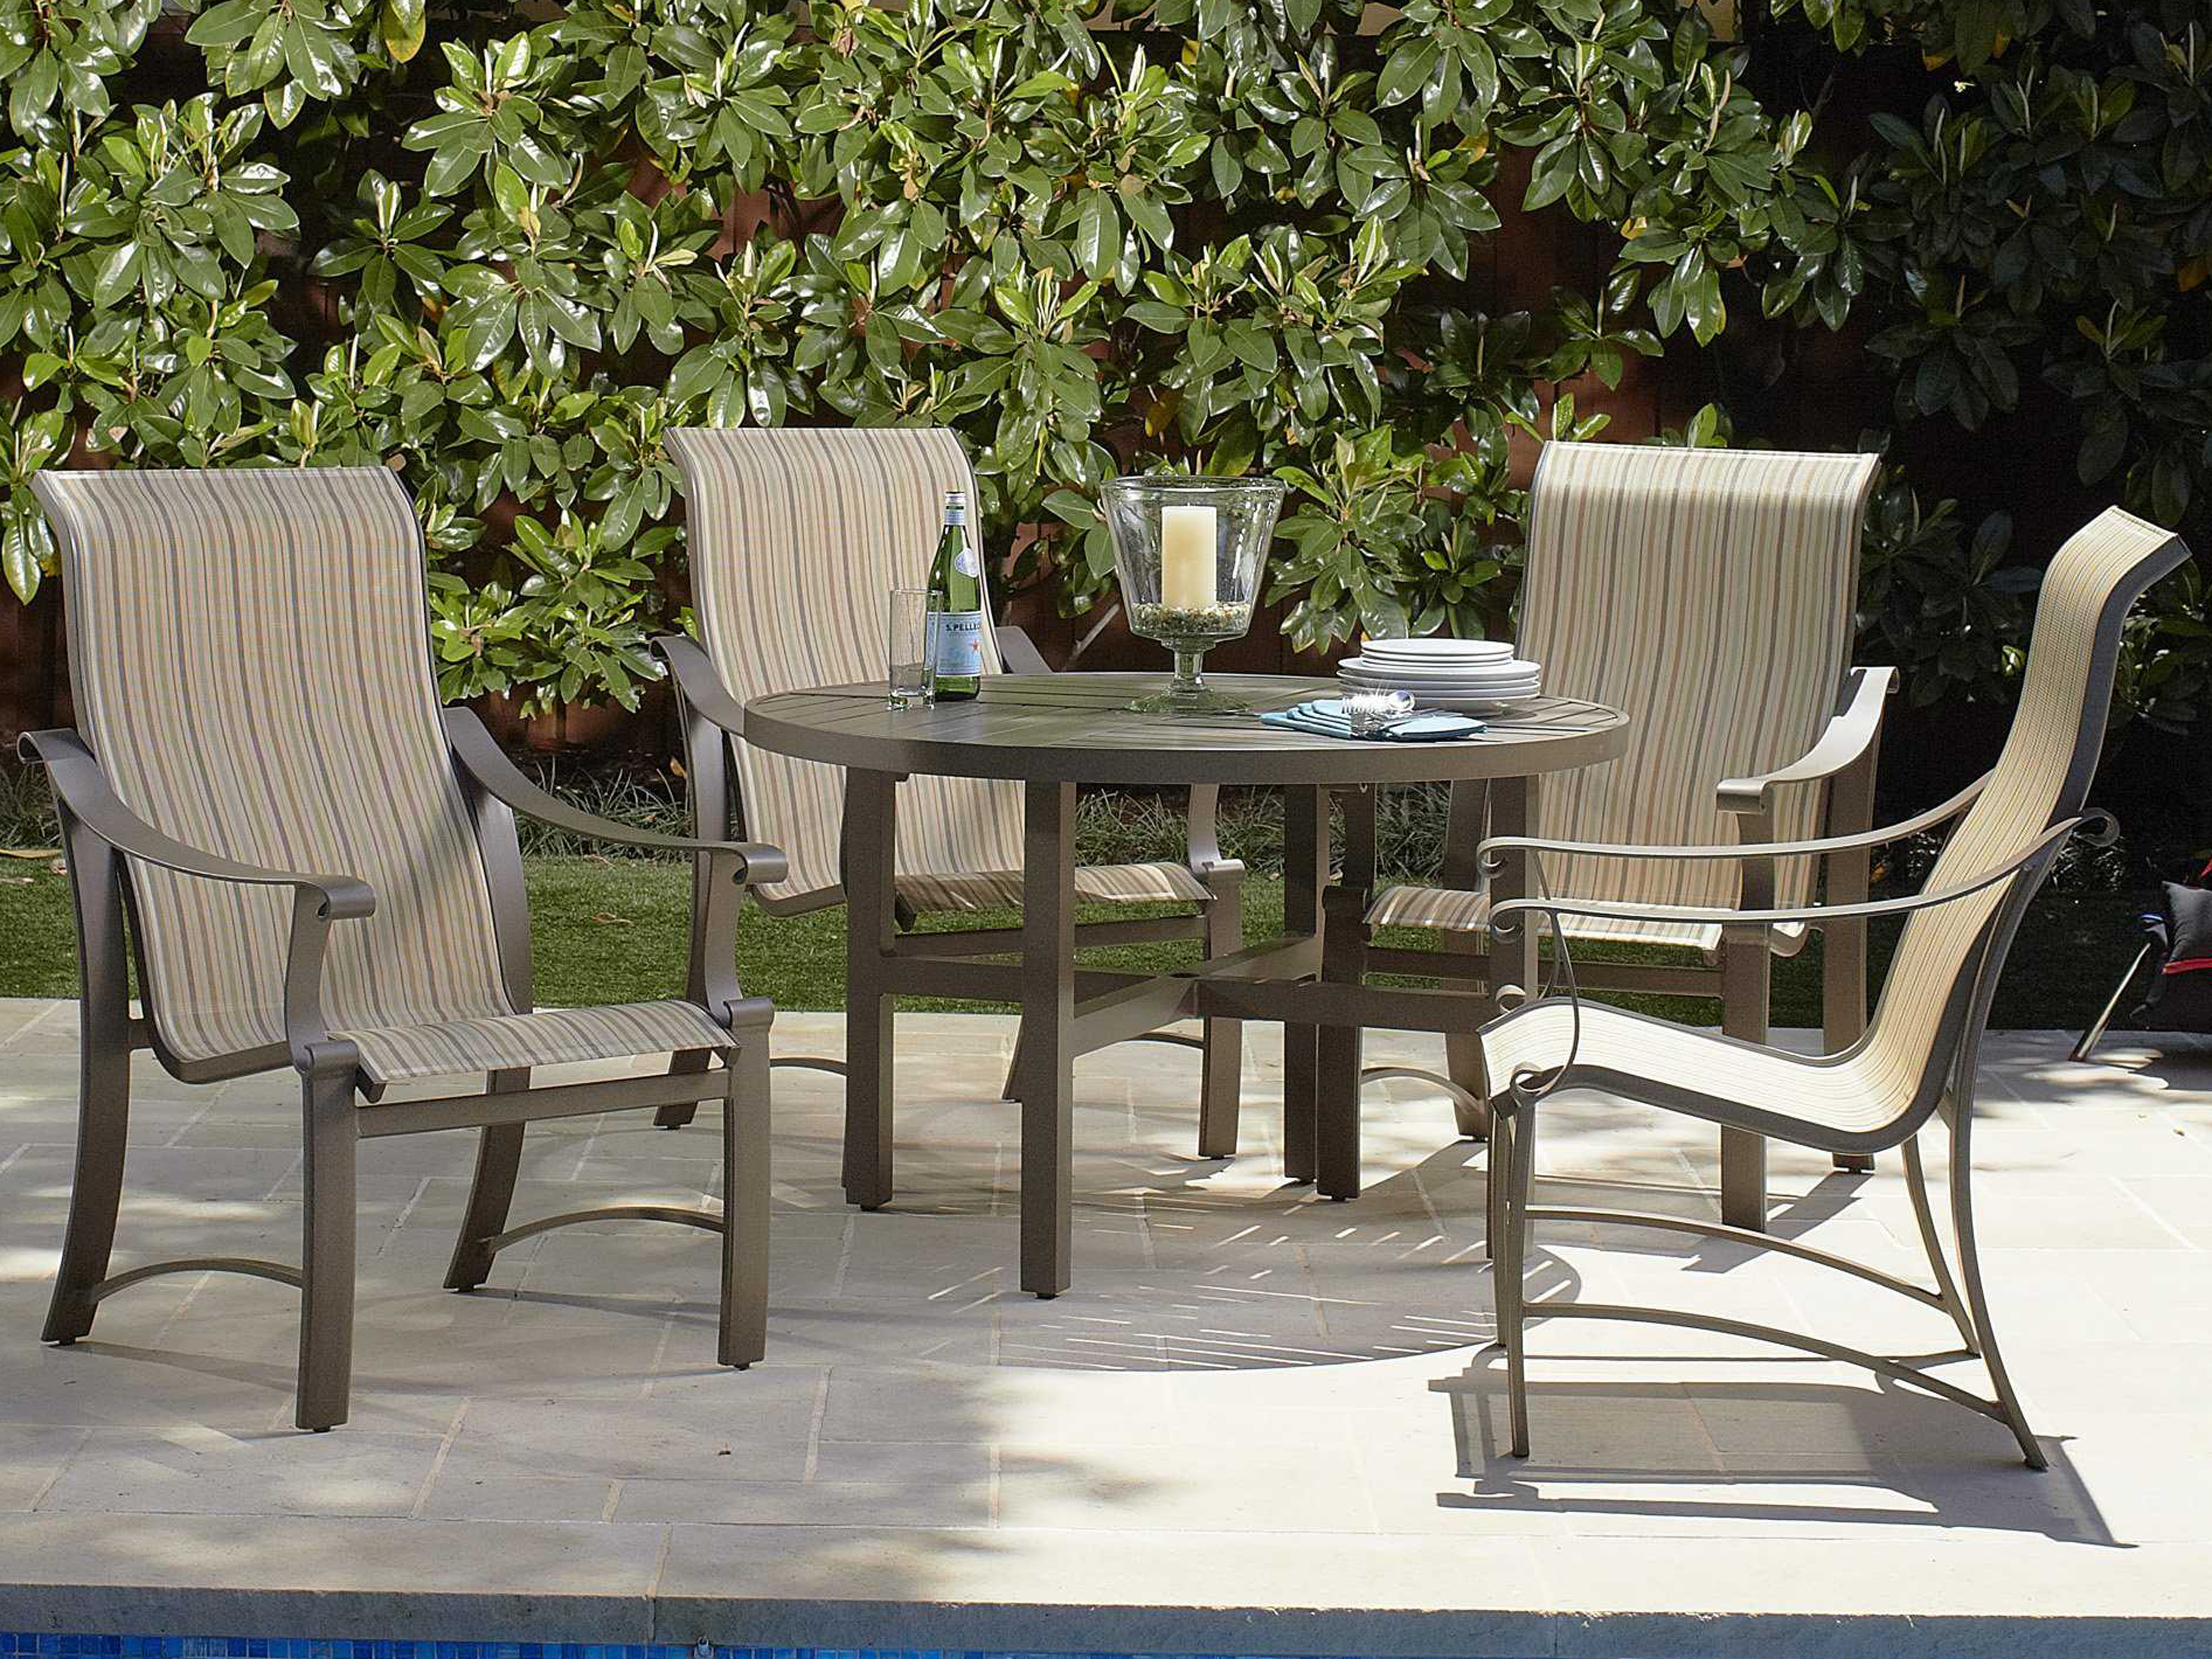 Extruded Aluminum Extruded Aluminum Outdoor Furniture